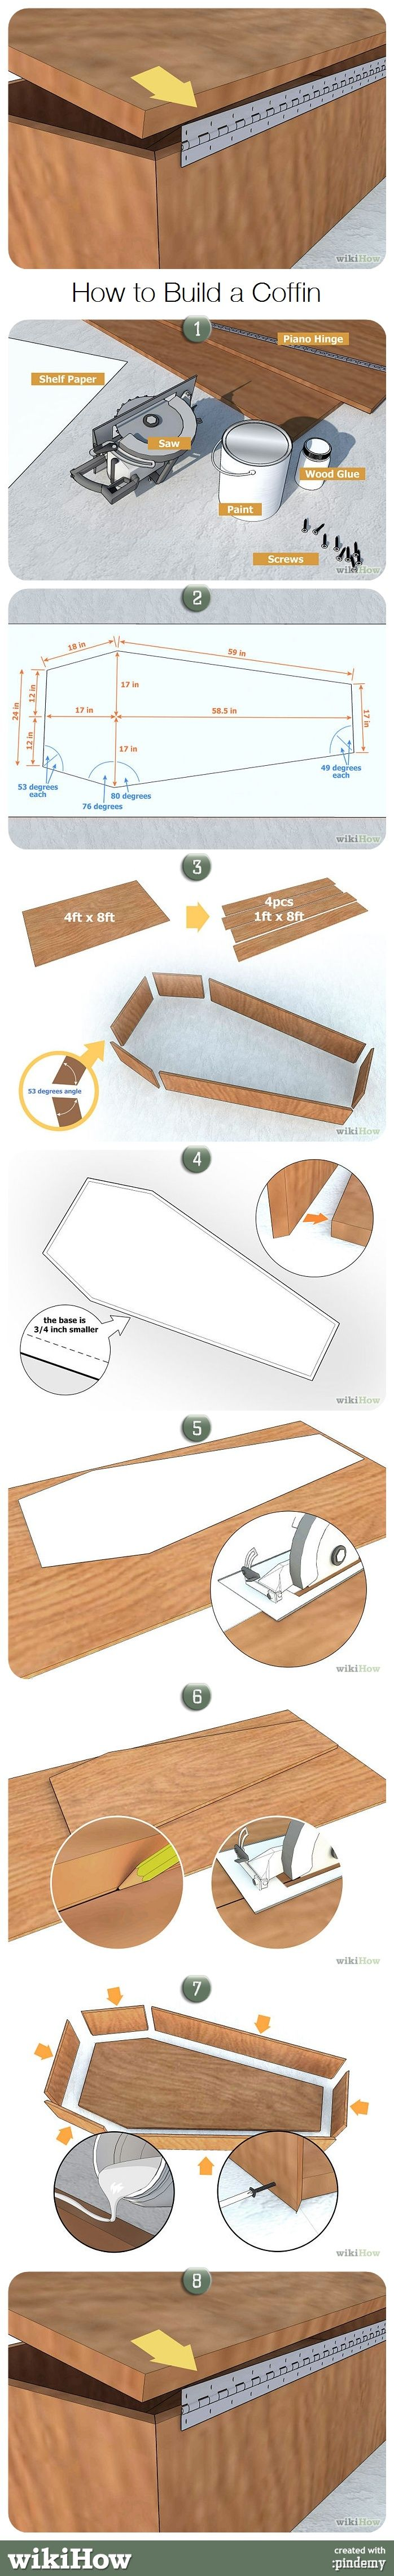 DIY Coffin! Because you just never know..... I'm only posting this because I can't fucking believe it's actually on pinterest... who the hell builds a coffin!? Psychopaths.  That's who